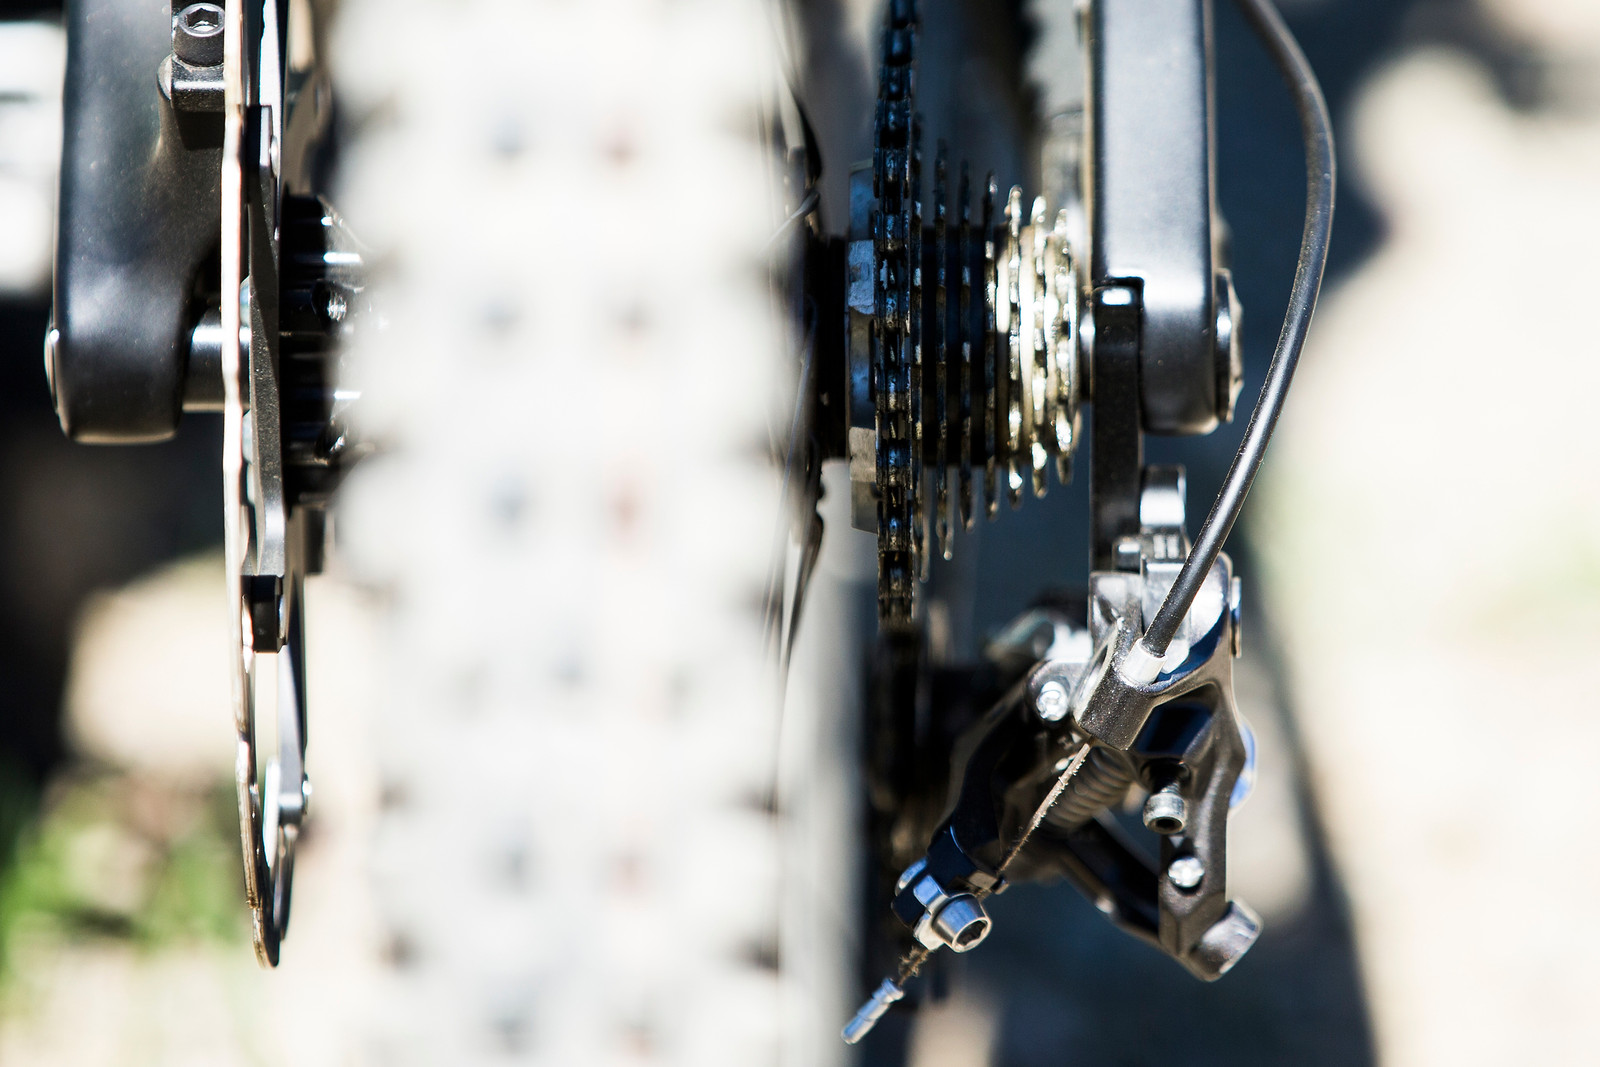 Shimano Cassette Cluster - WINNING BIKE: Tahnee Seagrave's Prototype Transition - Mountain Biking Pictures - Vital MTB